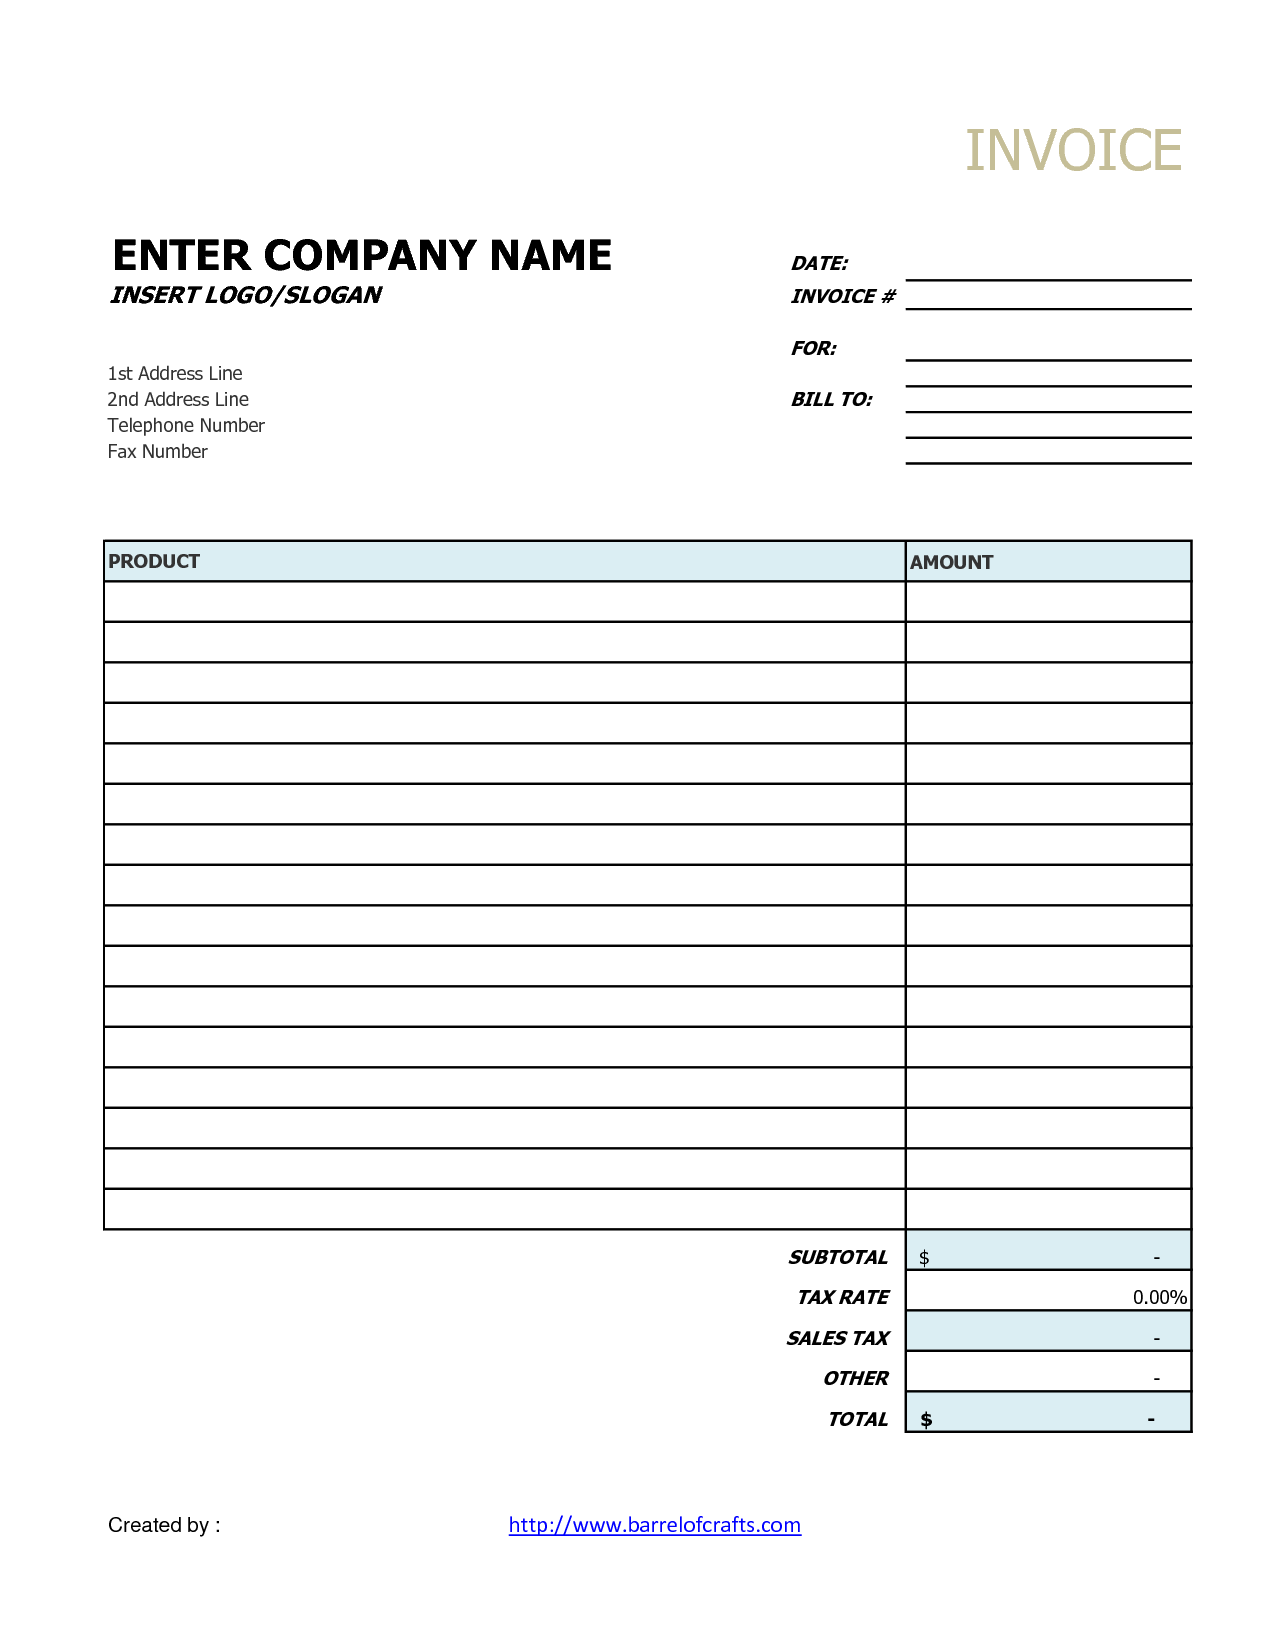 Written Receipt Excel Generic Invoice Template  Invoice Example Printing Receipt with How To Check Green Card Status Without Receipt Number Excel Generic Invoice Template Carbon Invoice Pads Pdf